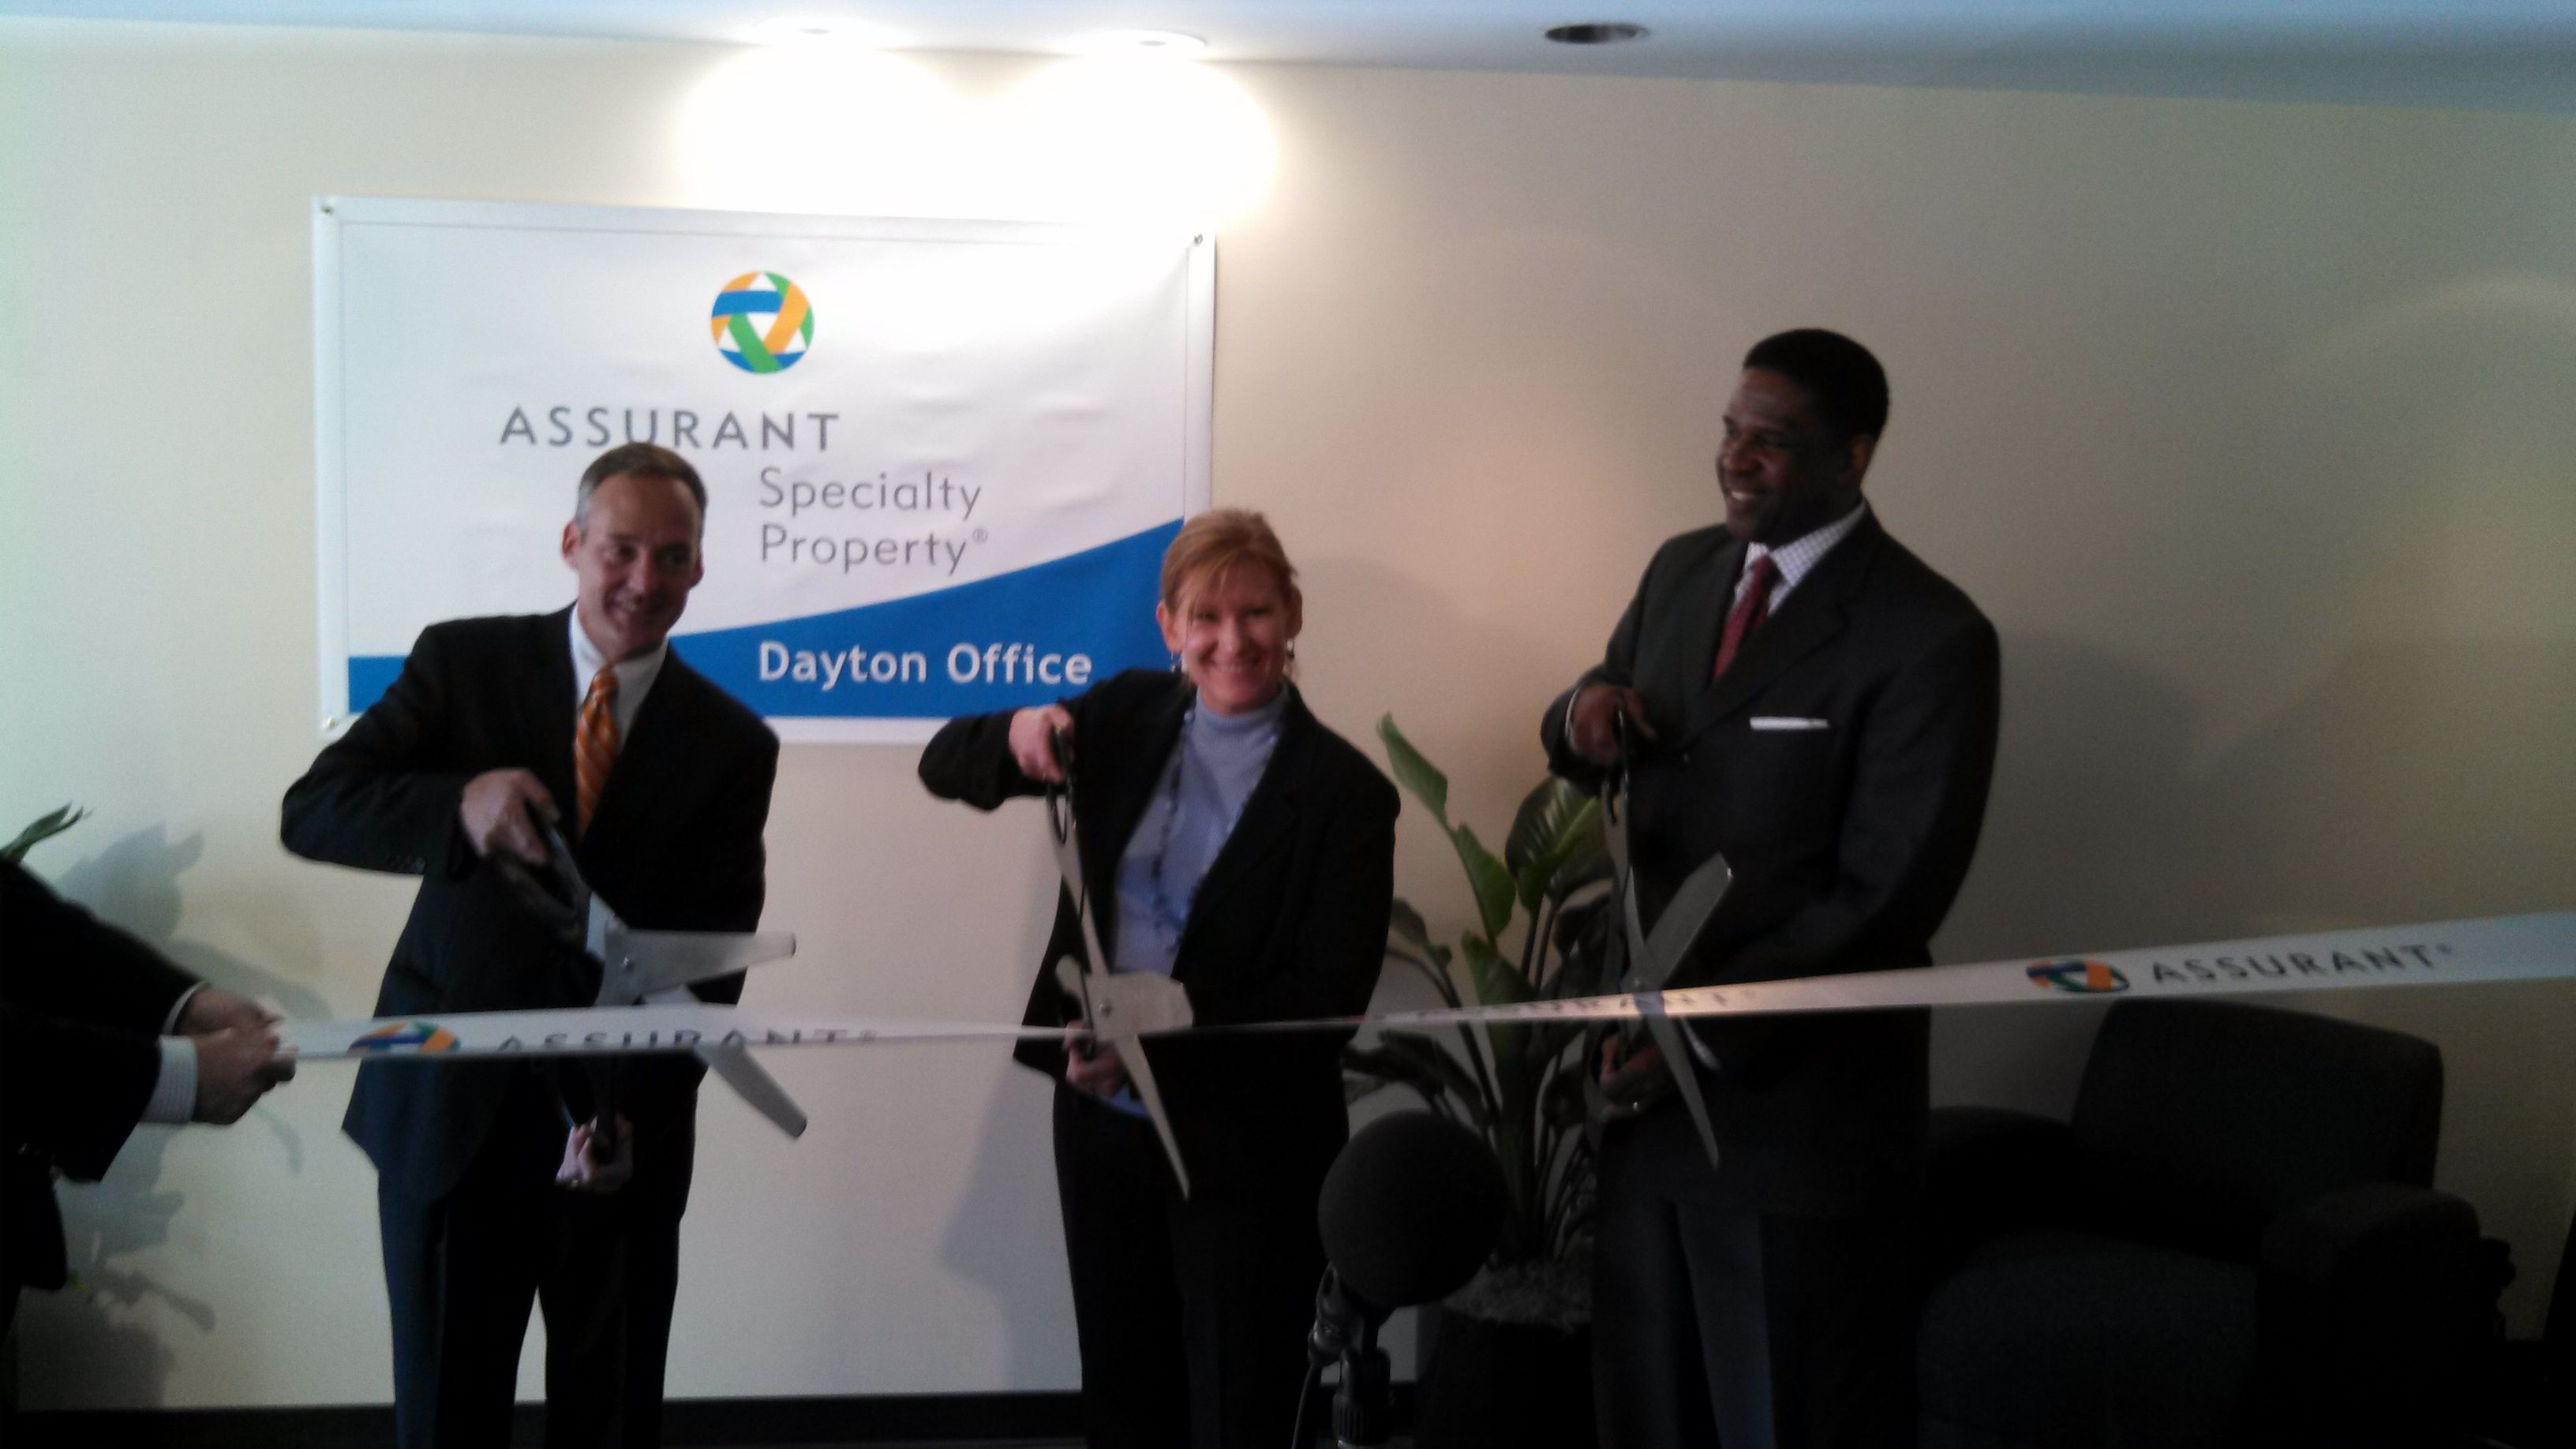 New Assurant Location In Dayton Brings 260 Jobs To The Area